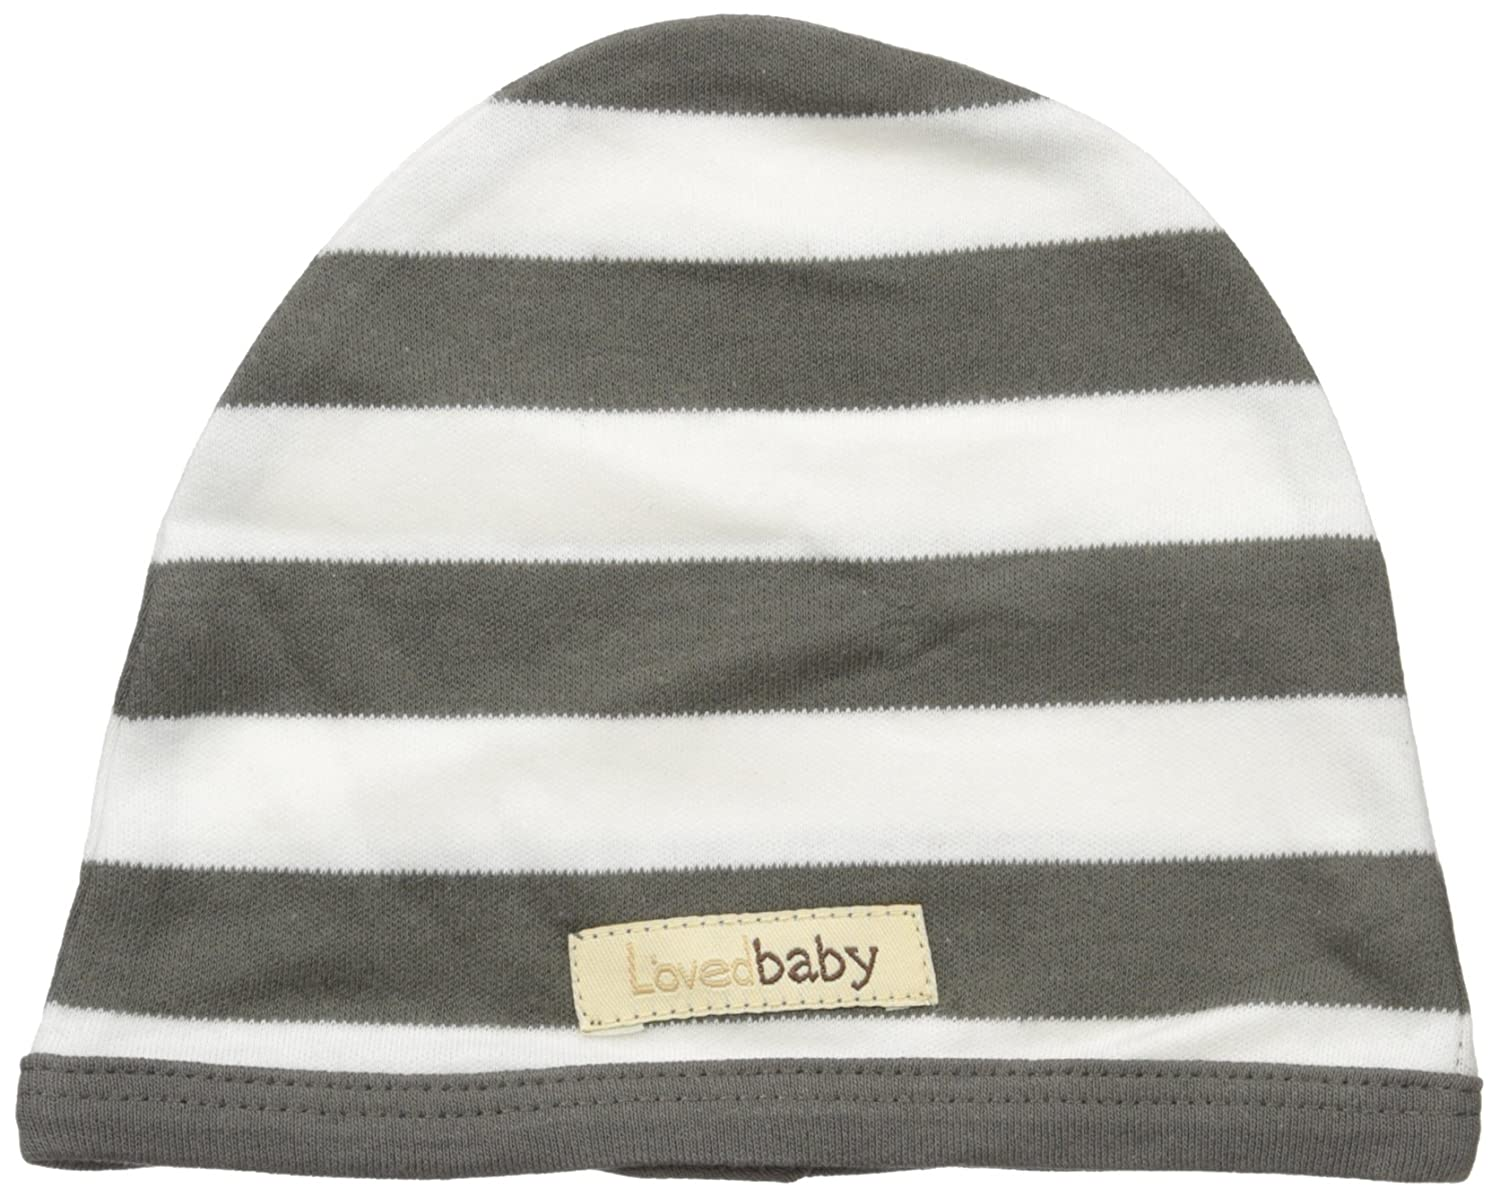 LOvedbaby Organic Infant Cap